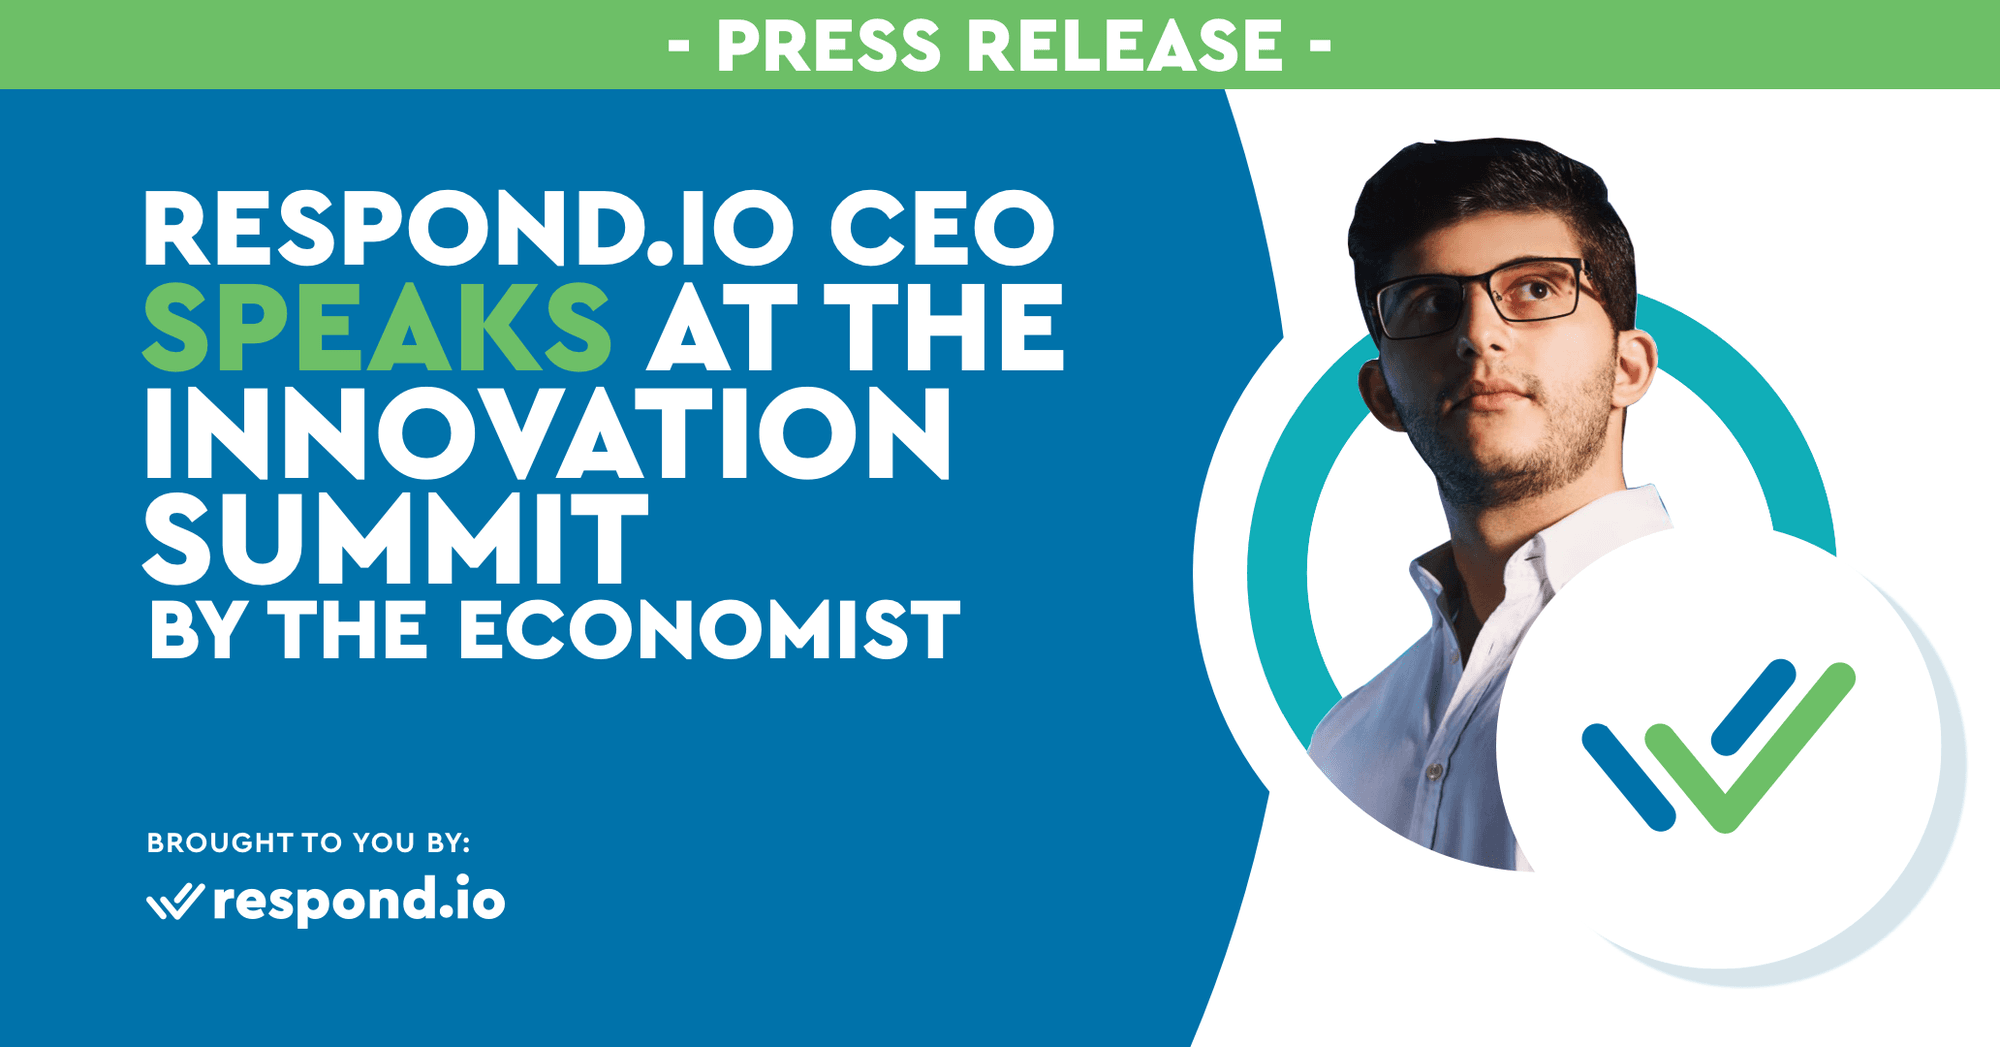 Rocketbots CEO Speaks at the Innovation Summit by The Economist